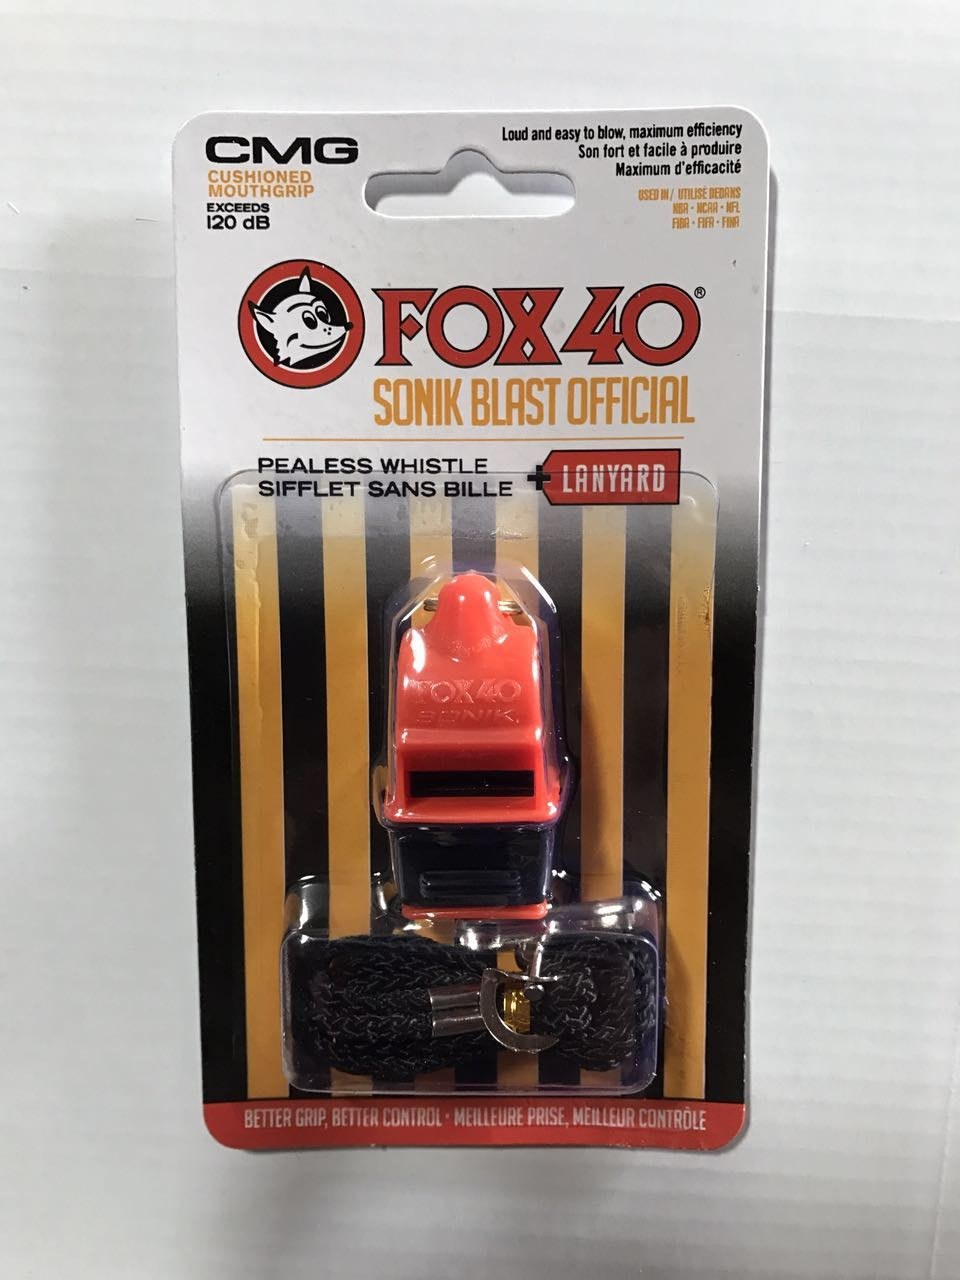 Free Shipping12pcs/lot Colorful  SONIC Fox 40 Whistle With CMG Mouthpiece And Lanyard In New Blister Packing